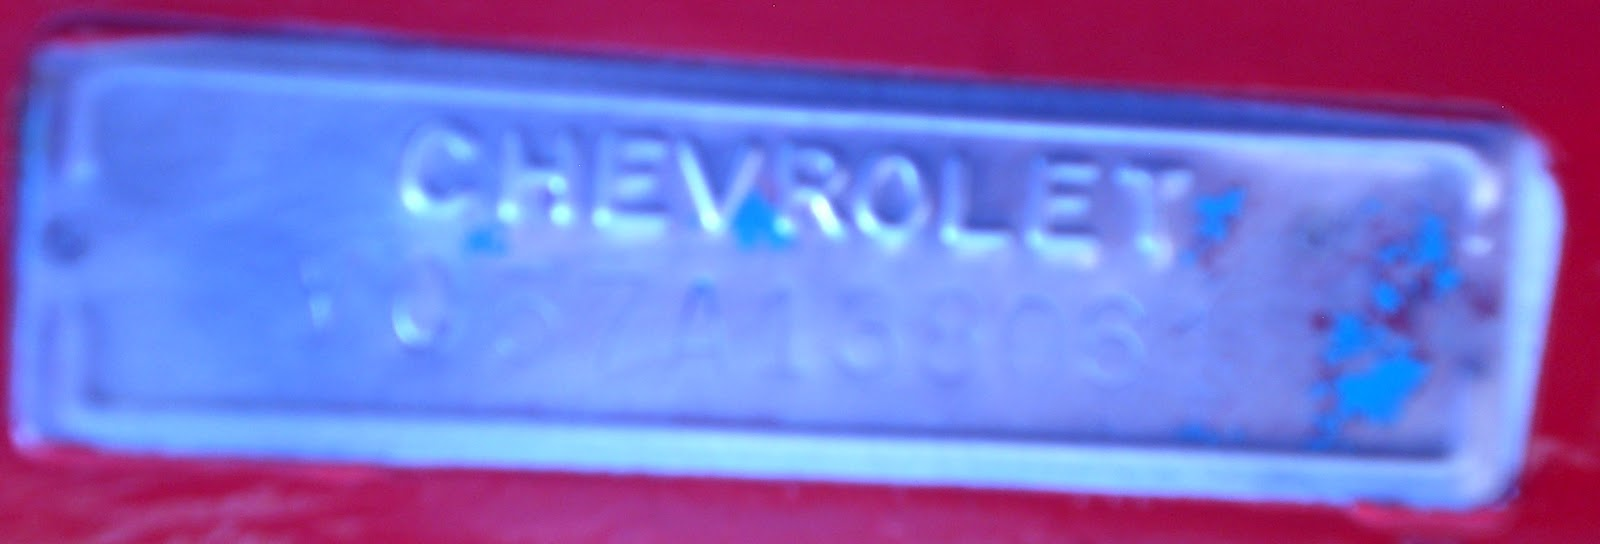 Robs 1957 Chevy Bel Air Restoration Project May 2012 Chevrolet Vin Tag For Those Of You Who Are Interested Here Is The Meaning V V8 Engine C Belair Cheaper Versions Were 150 And 210